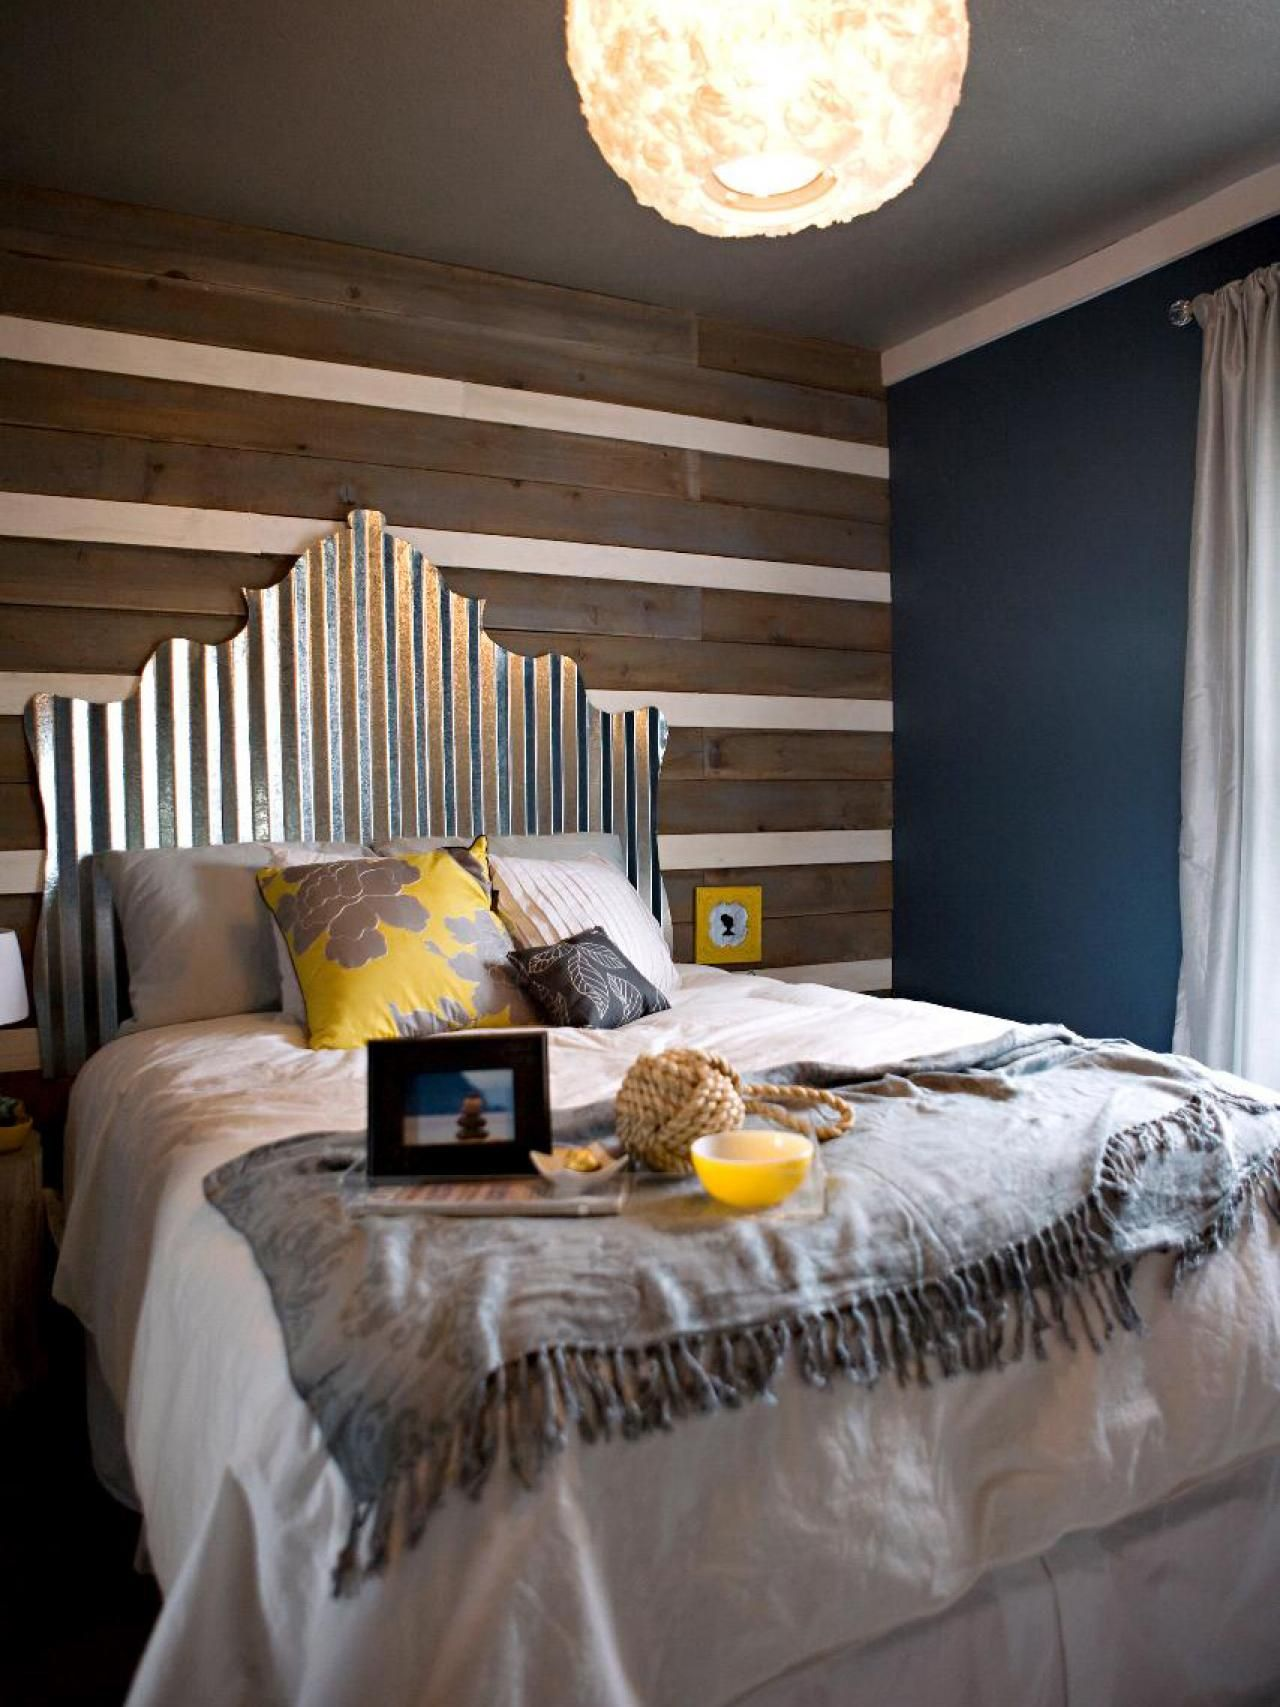 378f4a653e01 An industrial-style metal headboard is cut in a traditional shape and  positioned against a wood-beam accent wall to create a rustic chic bedroom.